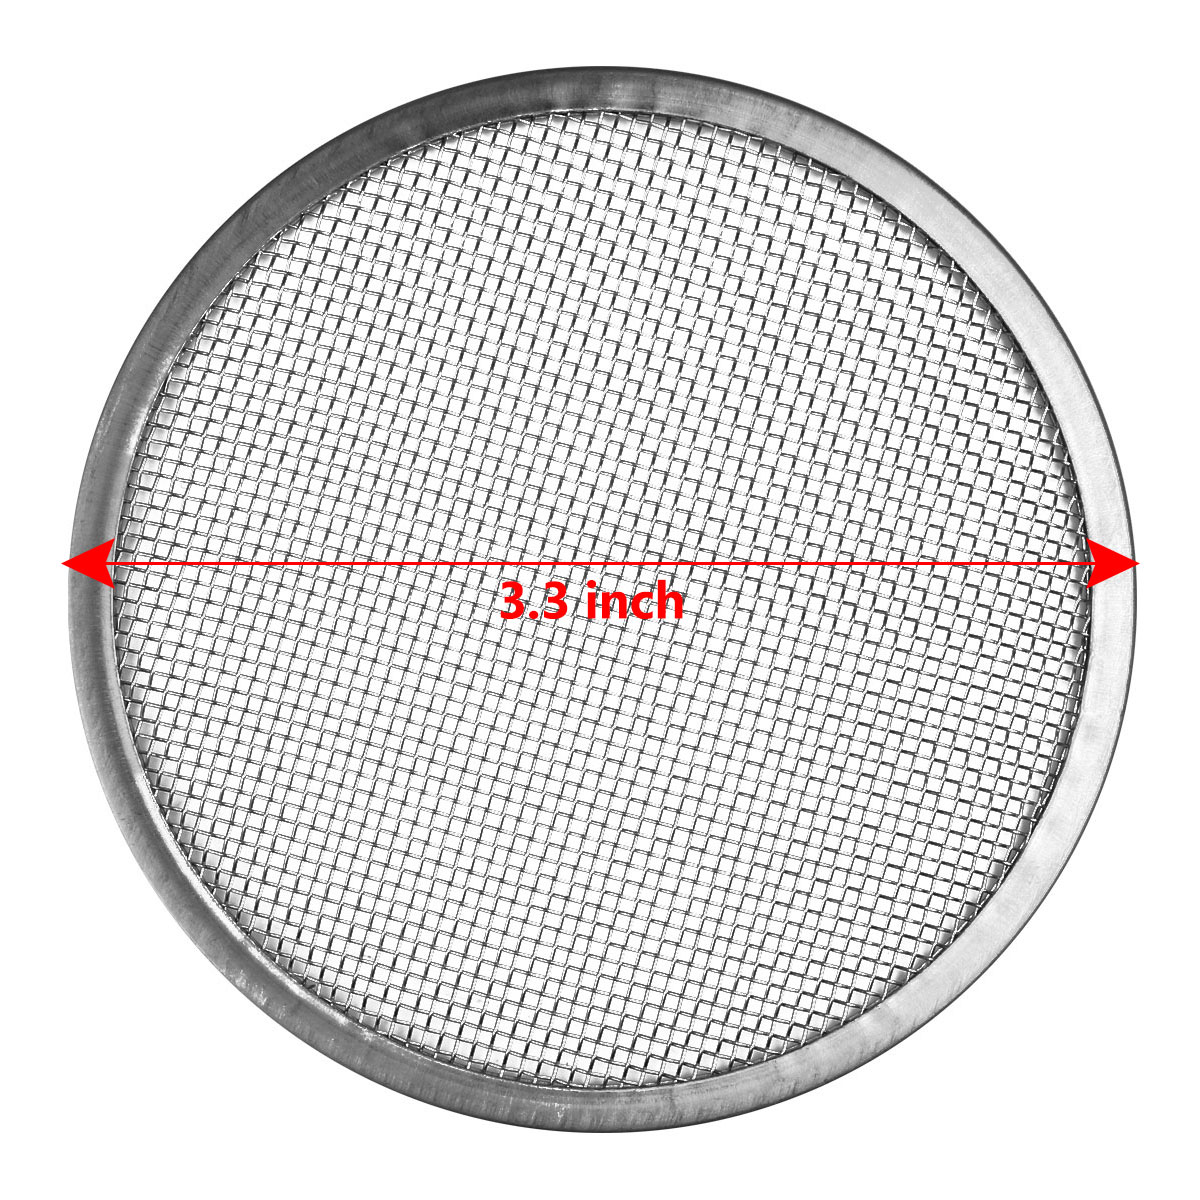 5X 8.4cm Seed Sprouting Mesh Screen Strainer Filter Covers Lids for Mason Jars